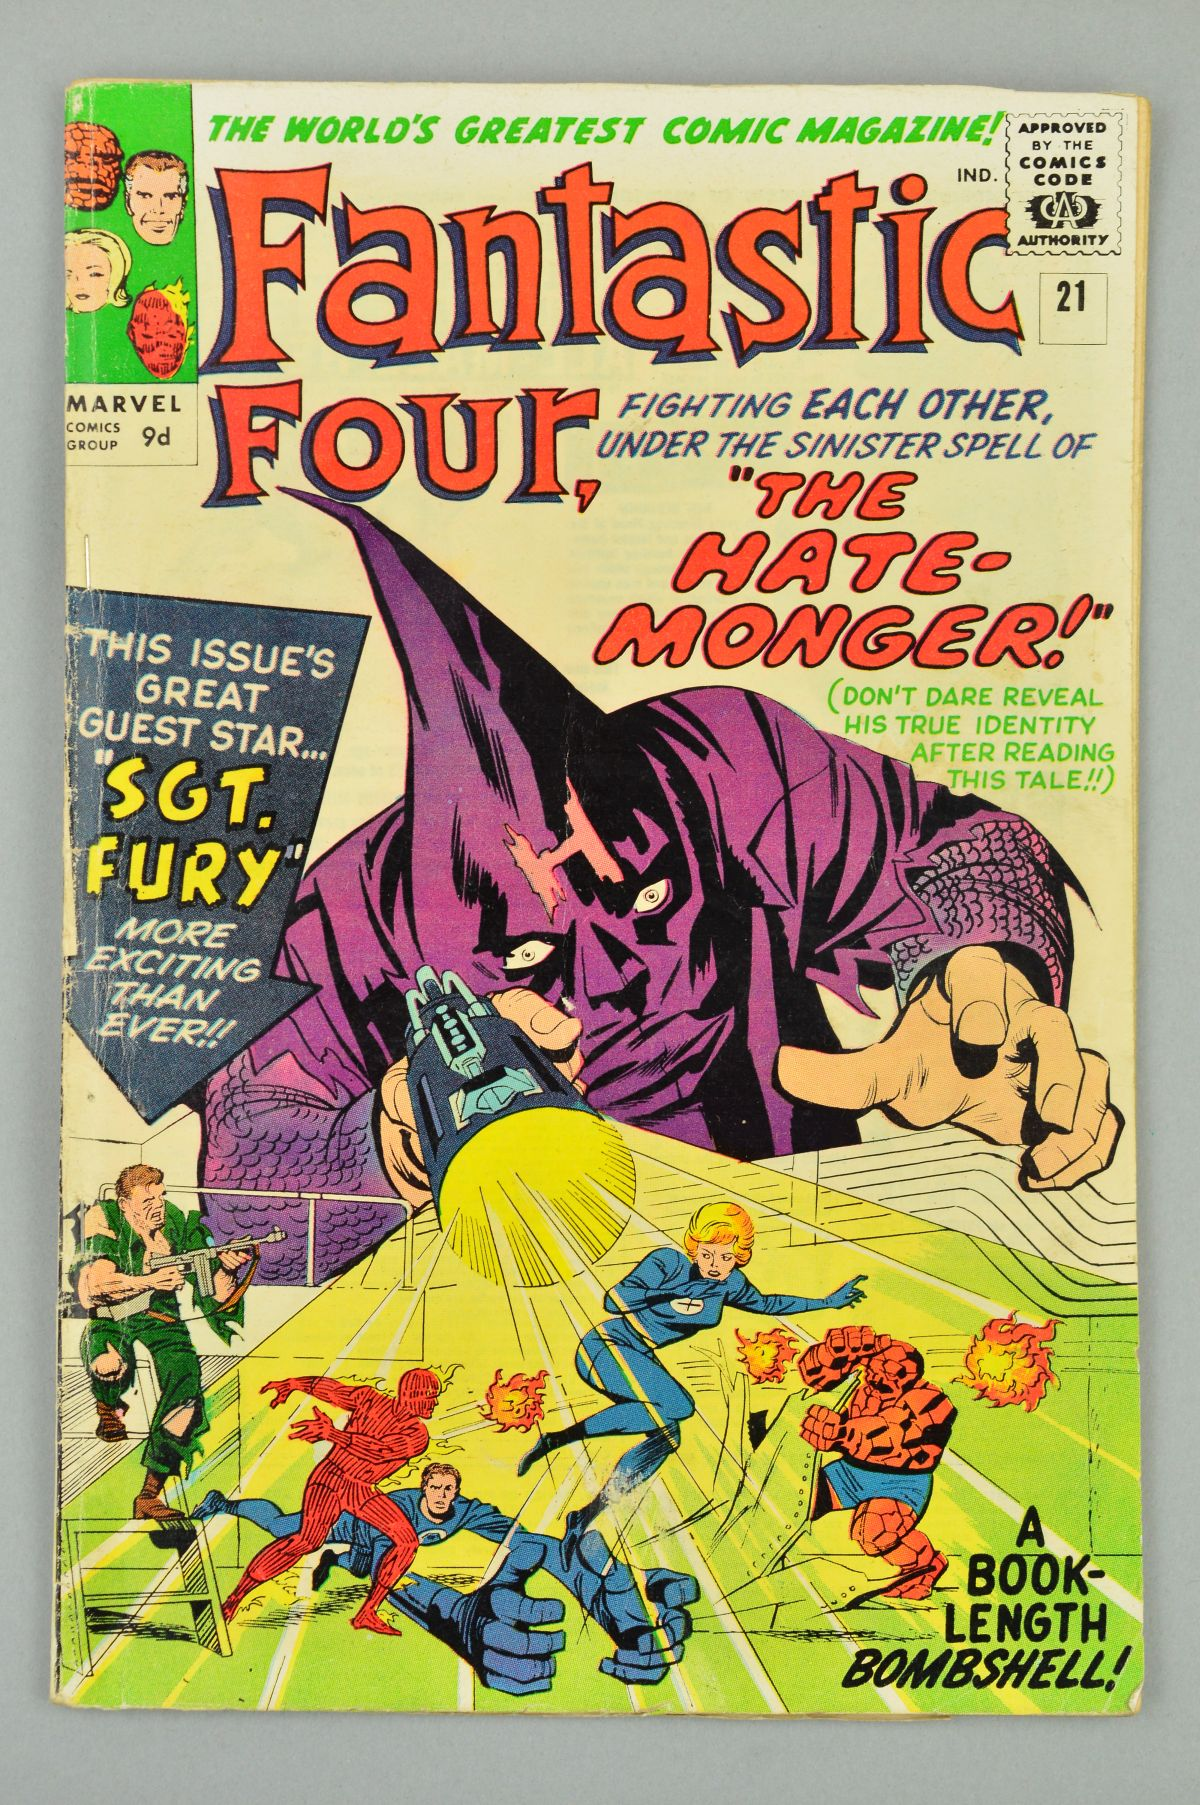 Lot 1821 - Fantastic Four (1961) #21, Published:December 10, 1963, The enigmatic Hate-Monger uses his hate